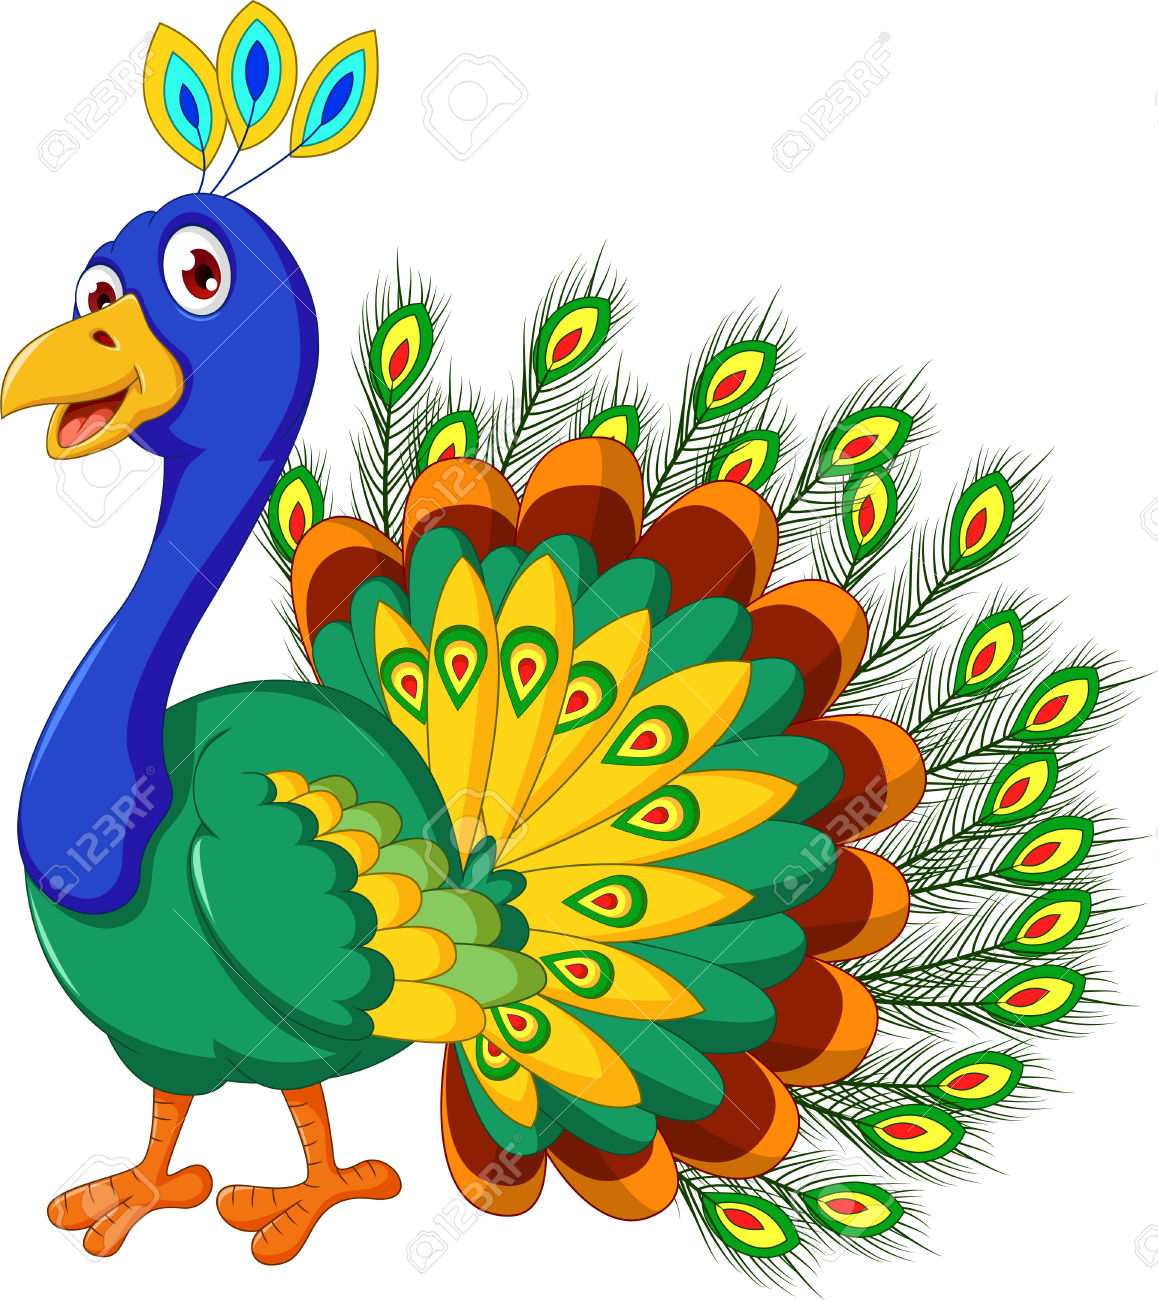 1158x1300 Peacock Clipart Cute Pencil And In Color Peacock Clipart Peacock